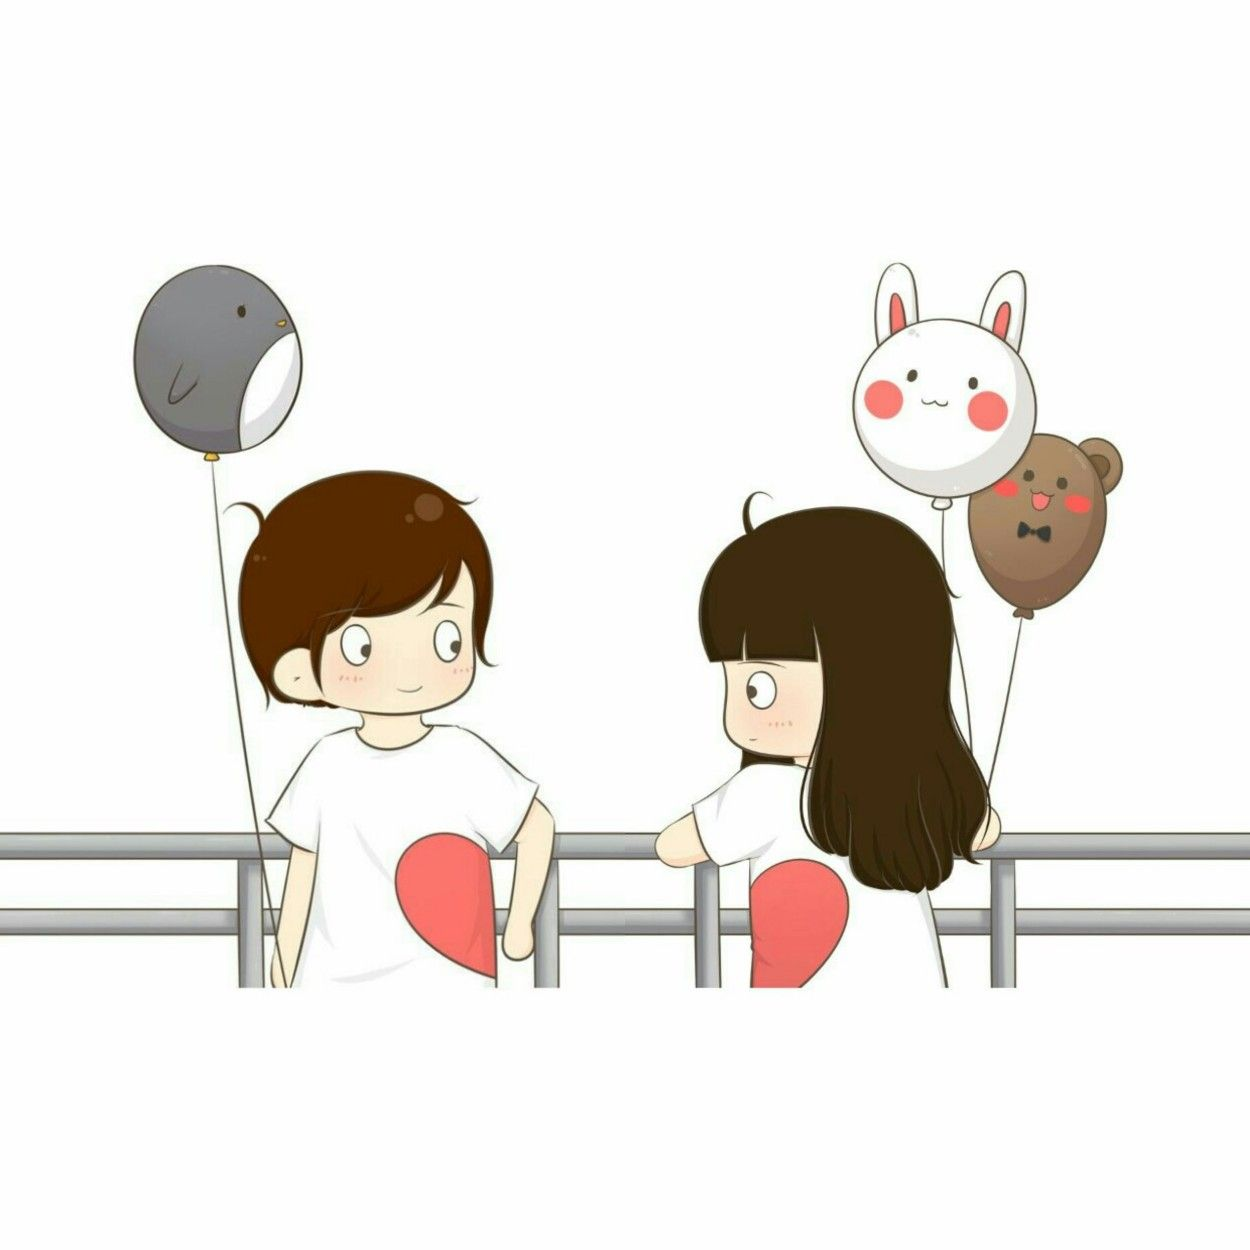 So Cutee Cute Couple Wallpaper Cute Cartoon Wallpapers Cute Love Cartoons